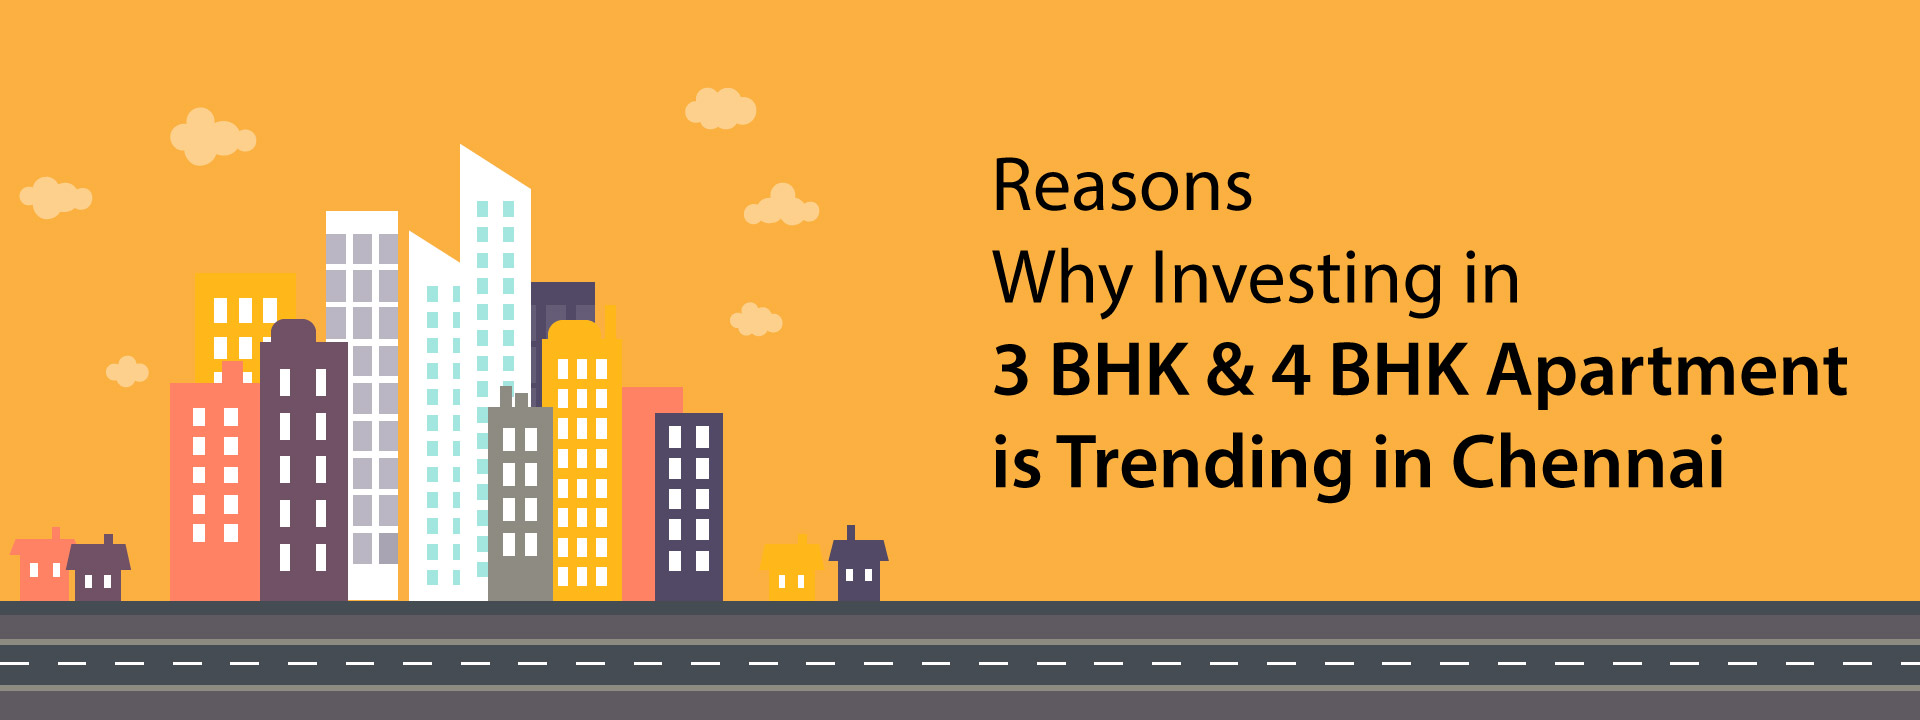 Reasons Why Investing in 3 & 4 BHK Apartment is Trending in Chennai